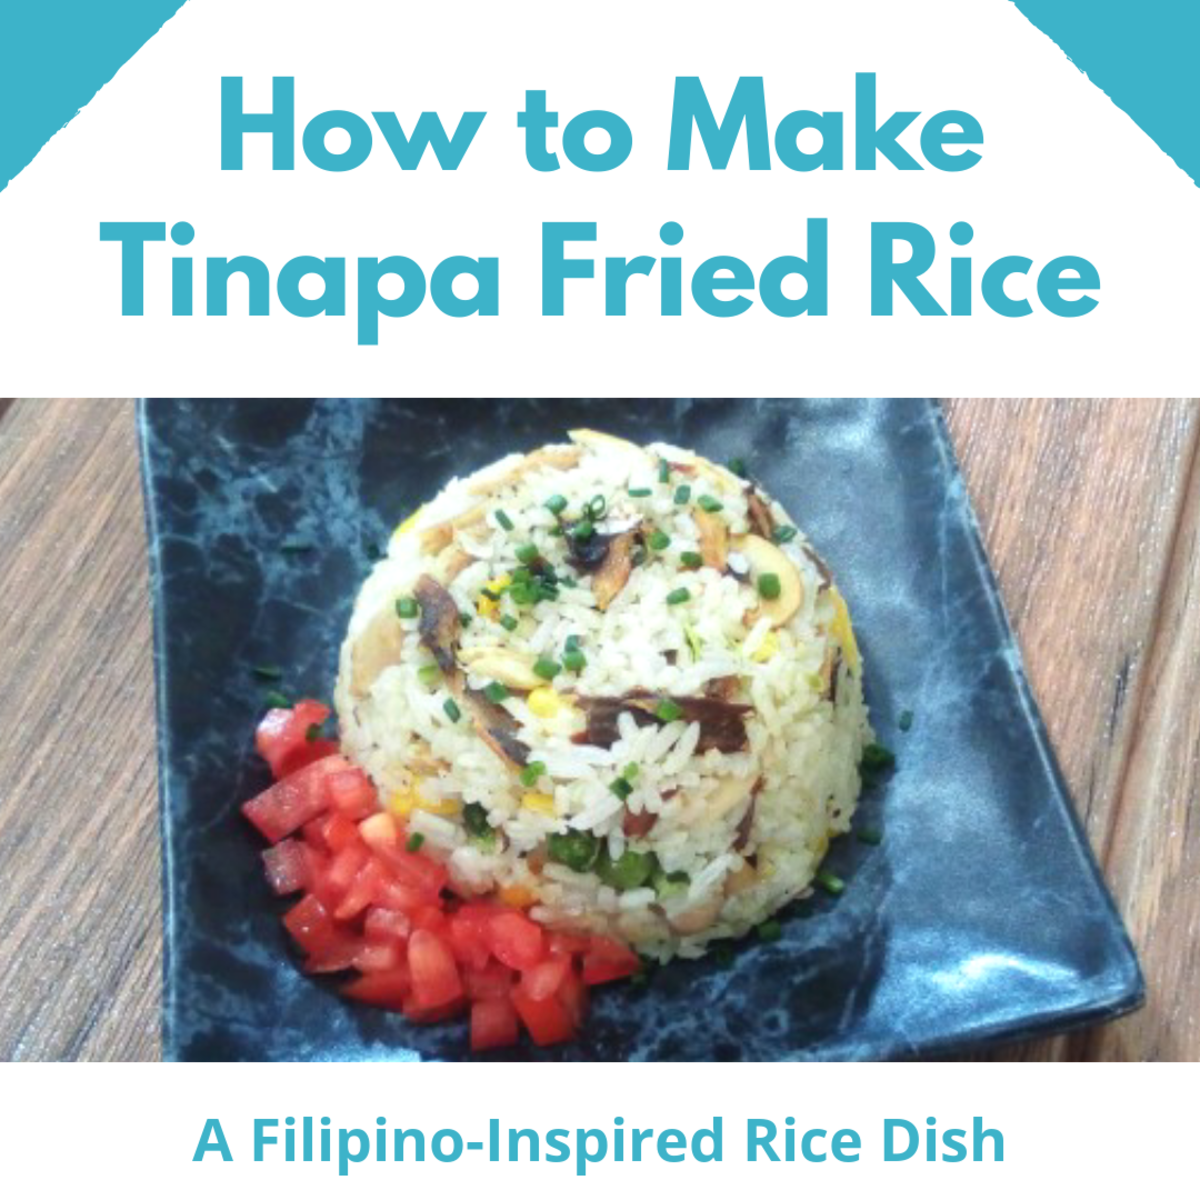 how to make tinapa fried rice